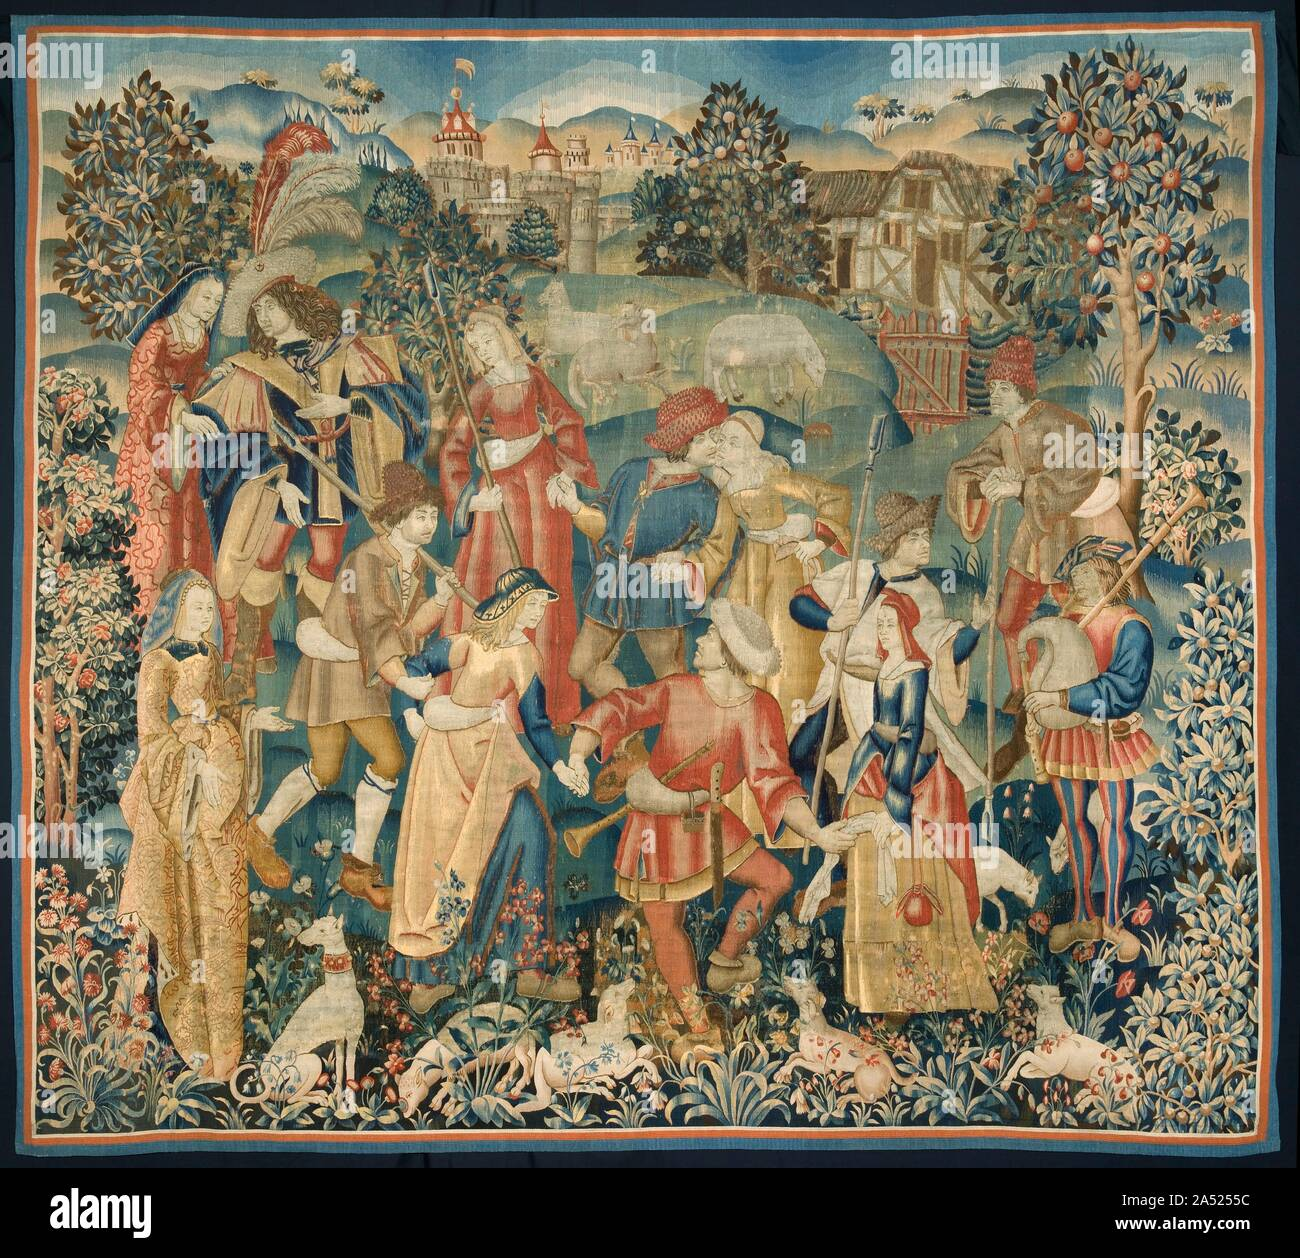 Shepherds In A Round Dance Around 1500 Late Medieval Tapestries Often Use A Limited Yet Contrasting Colour Palette To Portray Stylized Images The Expressions Of These Figures For Example Are Conveyed More By